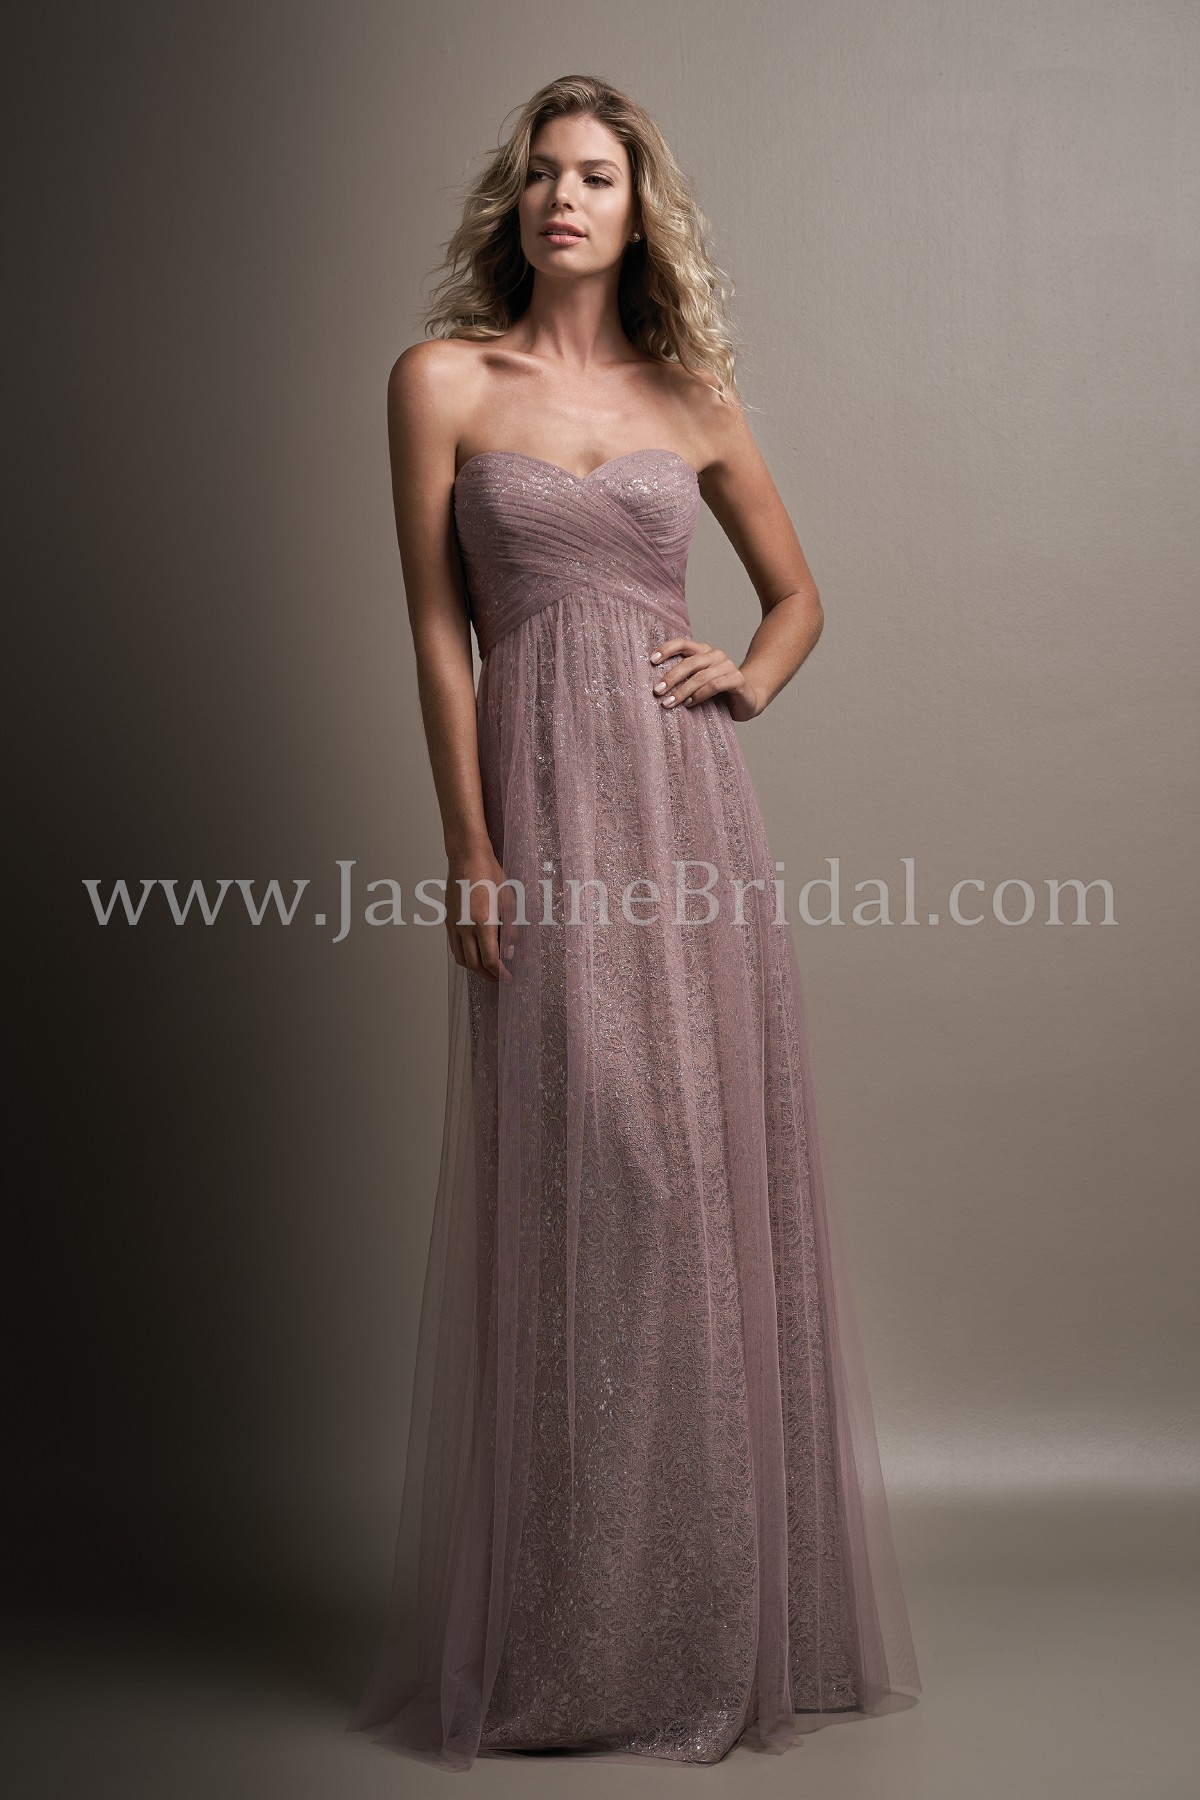 Bridesmaid dress designers archives chryssies bridal ombrellifo Images